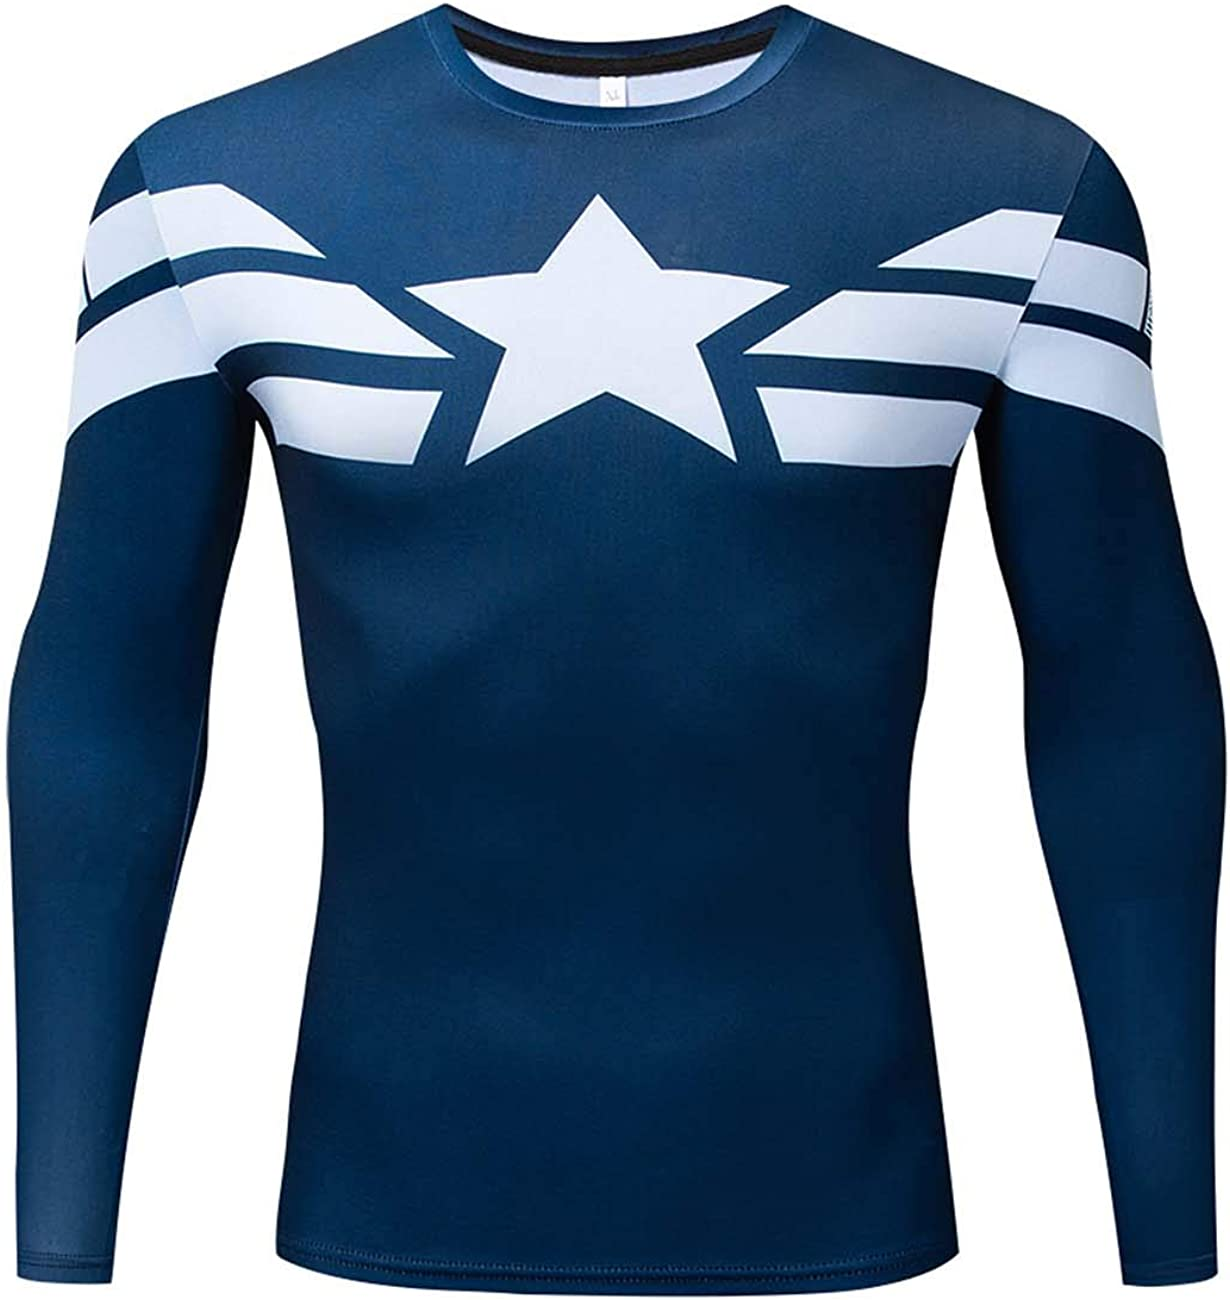 RONGANDHE Men's Branded goods Super-Hero Compression Sports Free shipping anywhere in the nation America Te Fitness